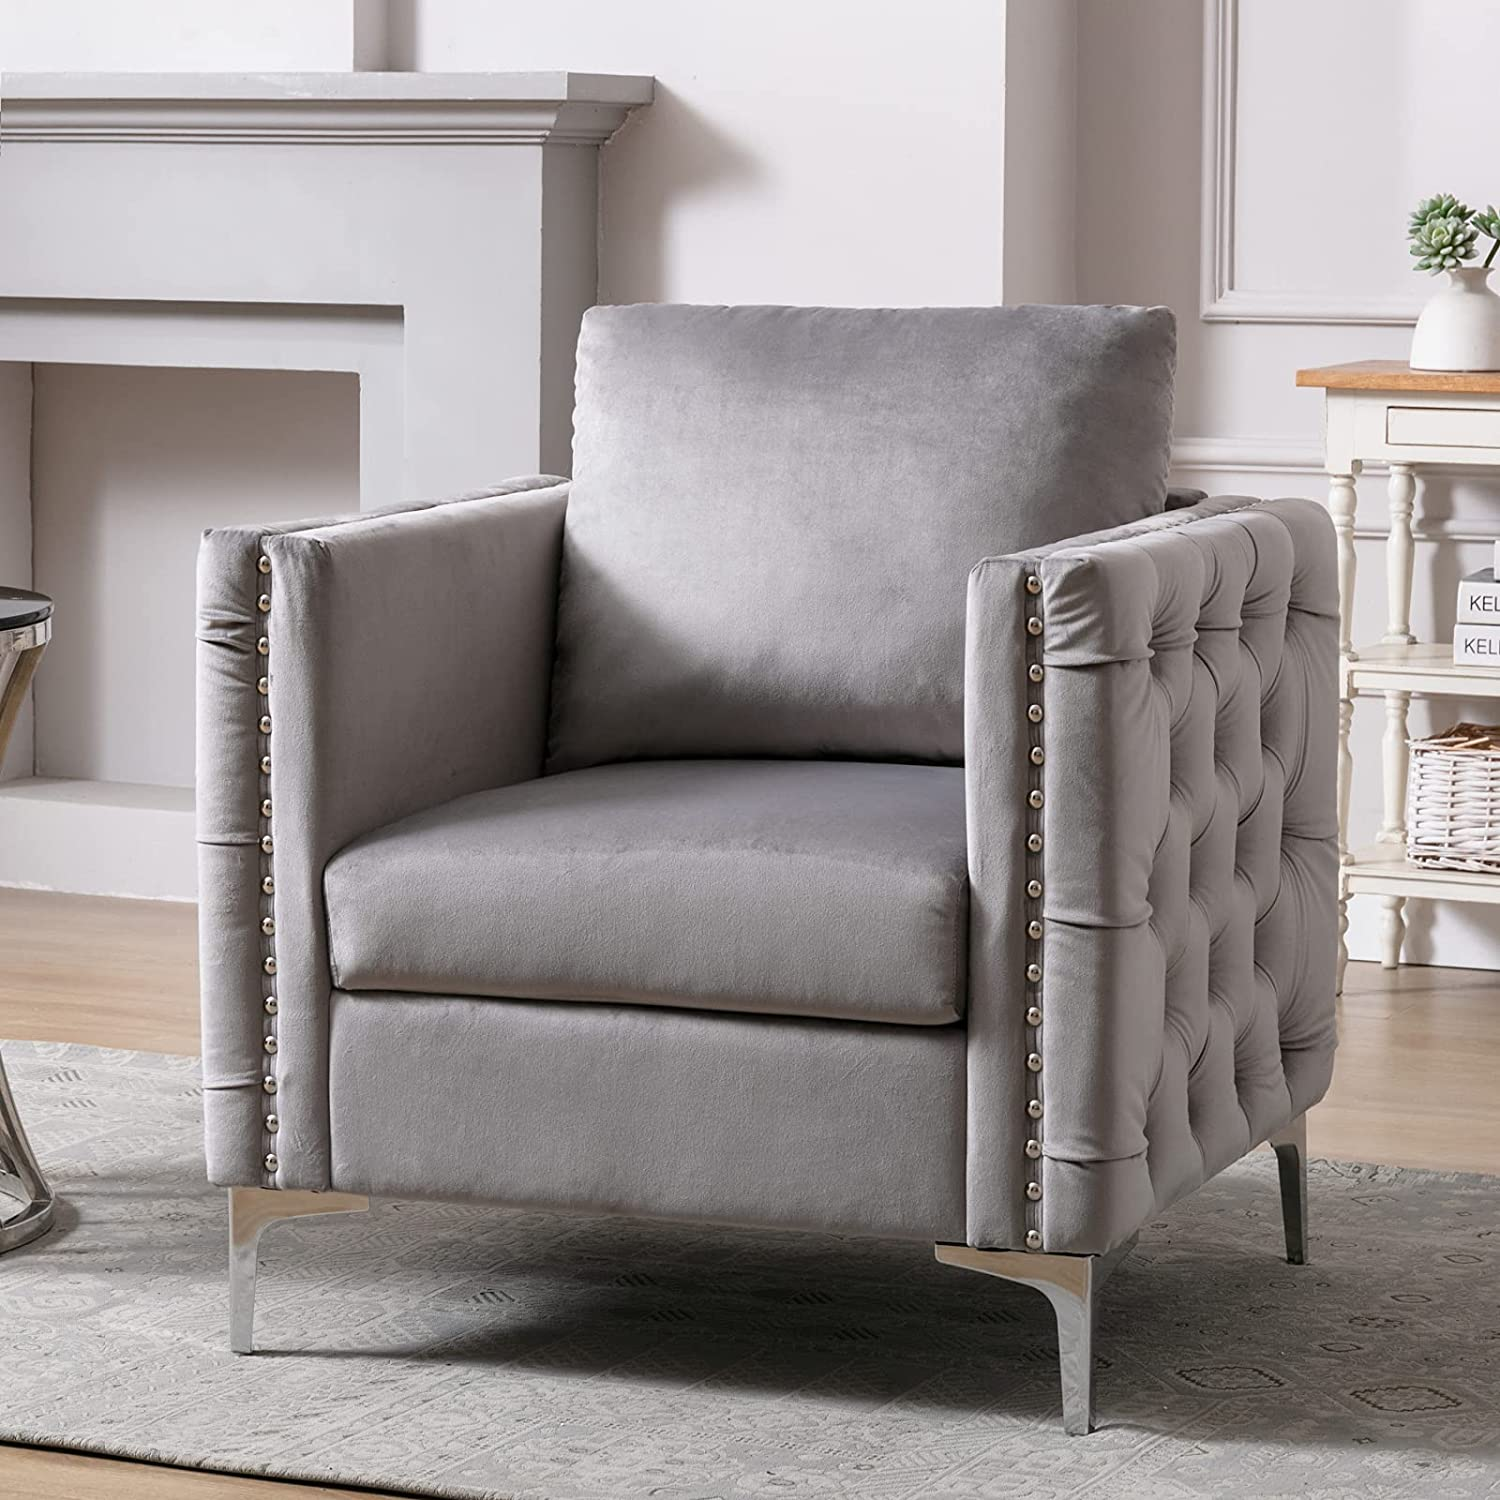 Babody Modern Armchair Tufted Ranking TOP7 Button Chair Max 46% OFF wit Accent Club